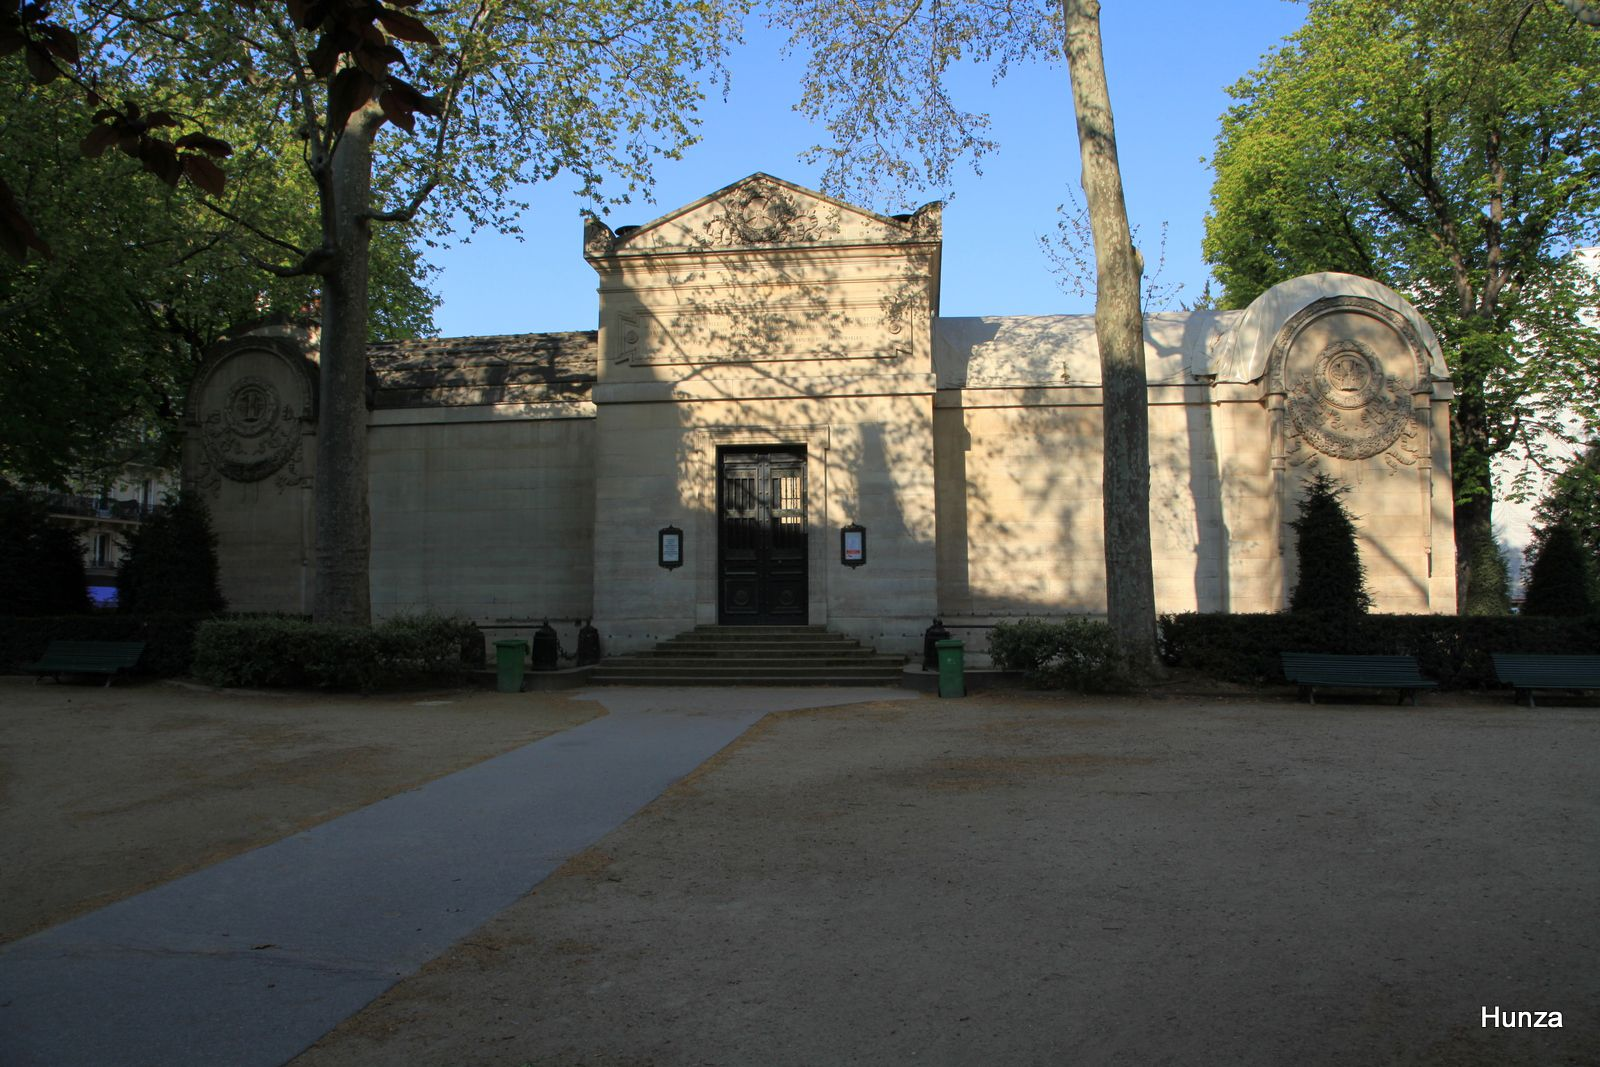 Paris, chapelle expiatoire